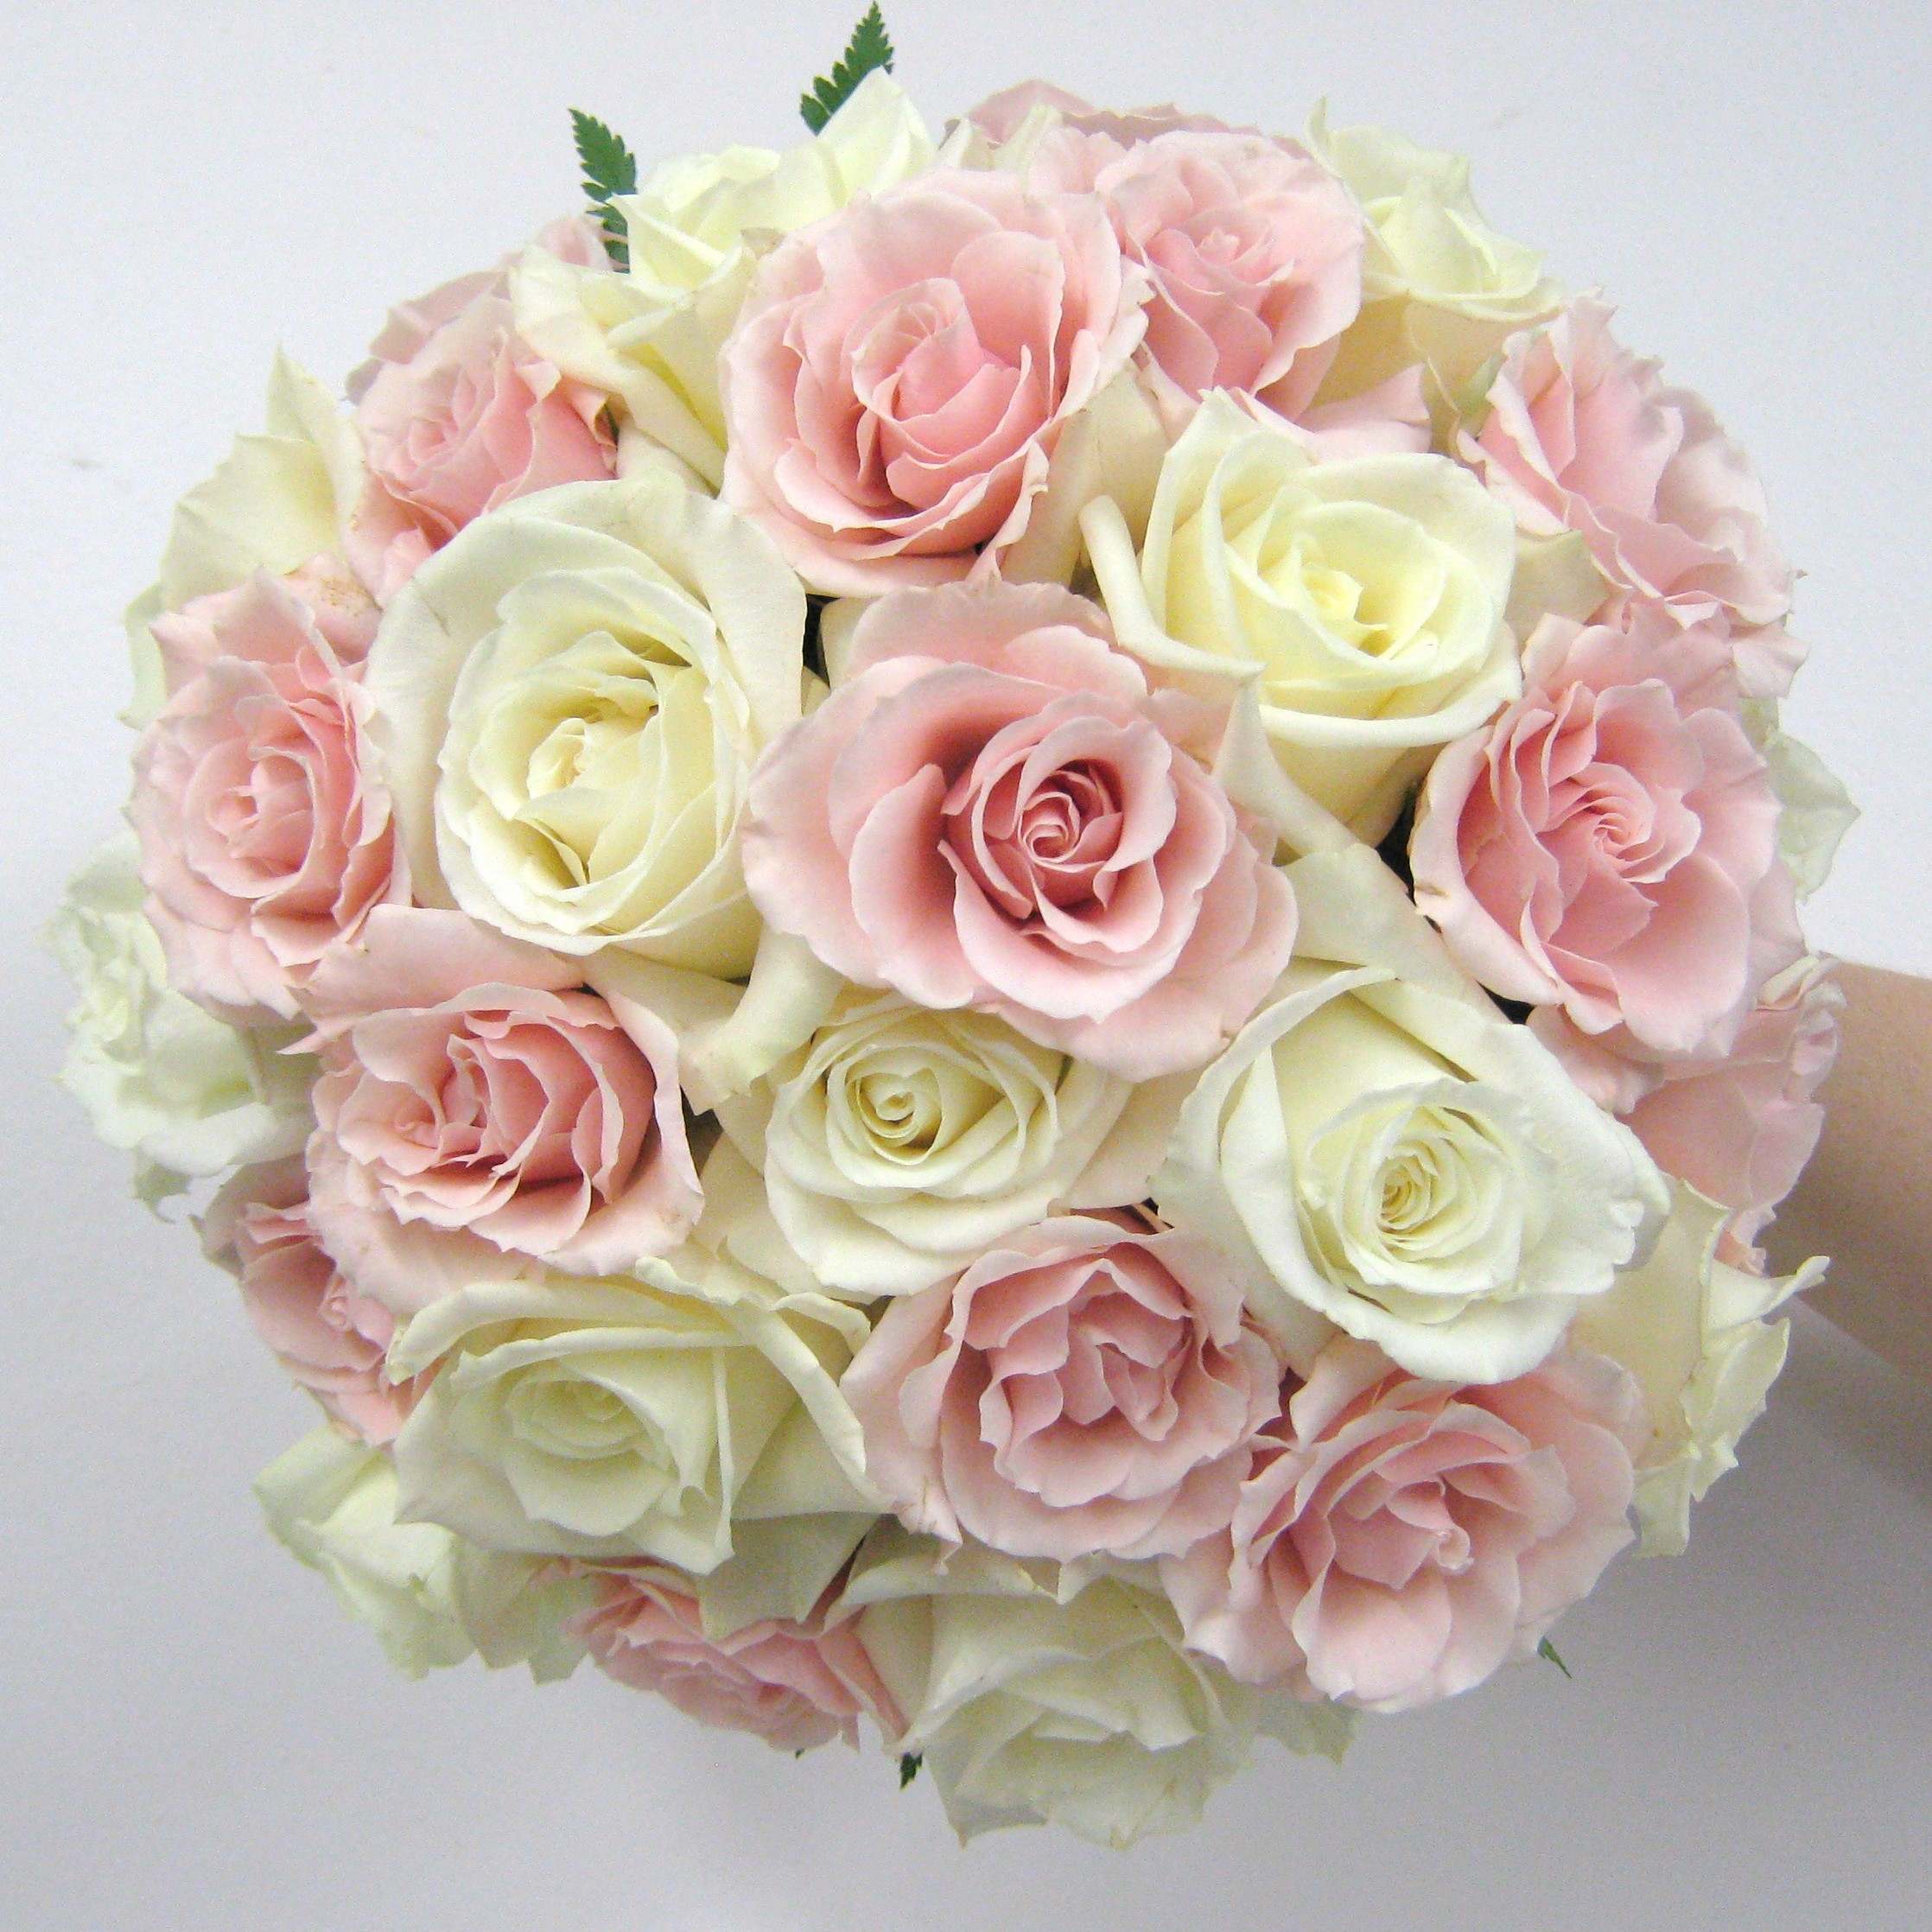 How to choose the most popular flower for a bouquet of the bride